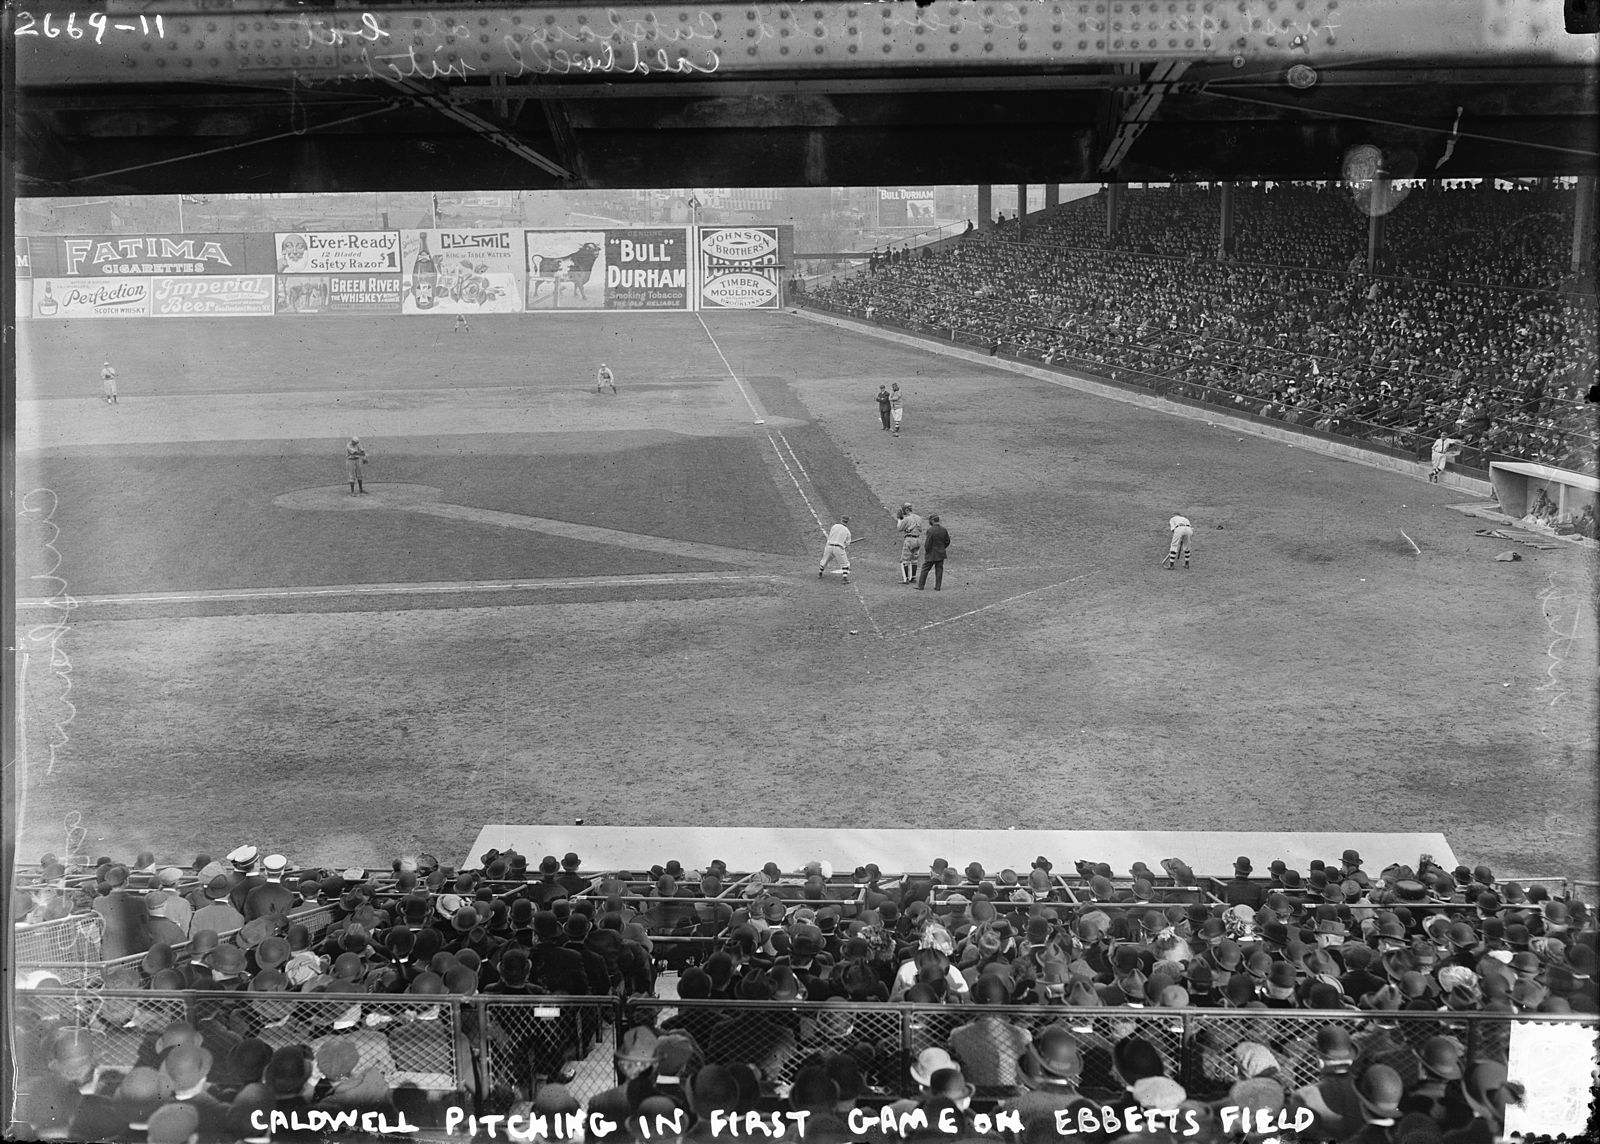 Happy REAL opening day, baseball fans and Metro Riders. Above, the first game at Ebbetts Field.